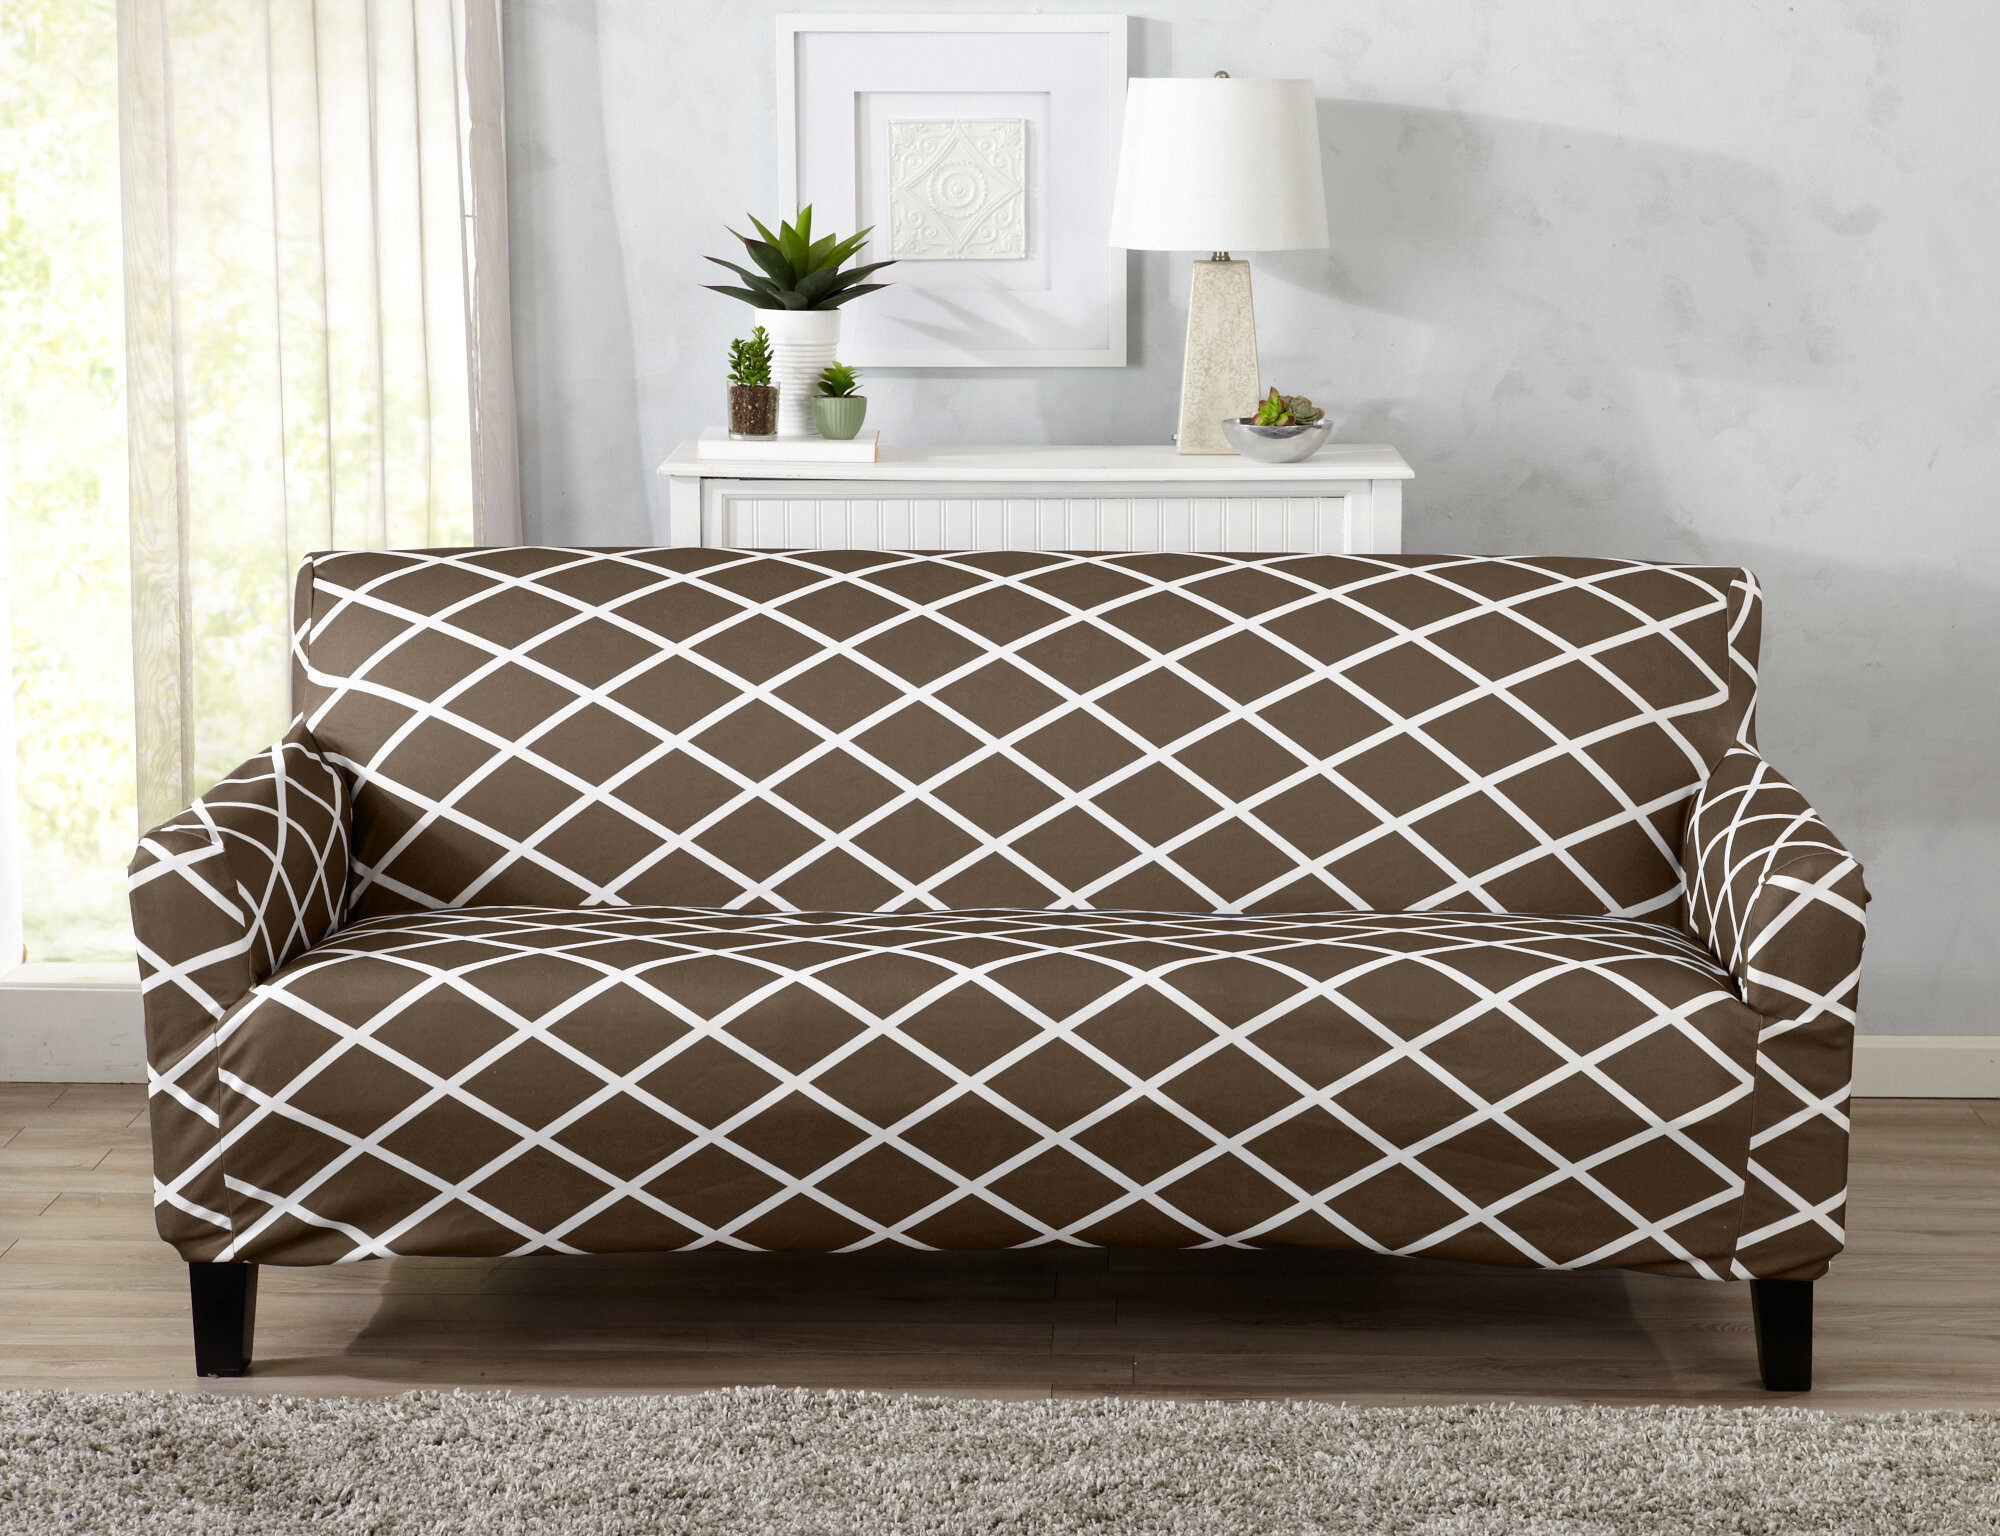 Beau Winston Porter Form Fitting Stretch Diamond Printed Sofa Slipcover U0026  Reviews | Wayfair